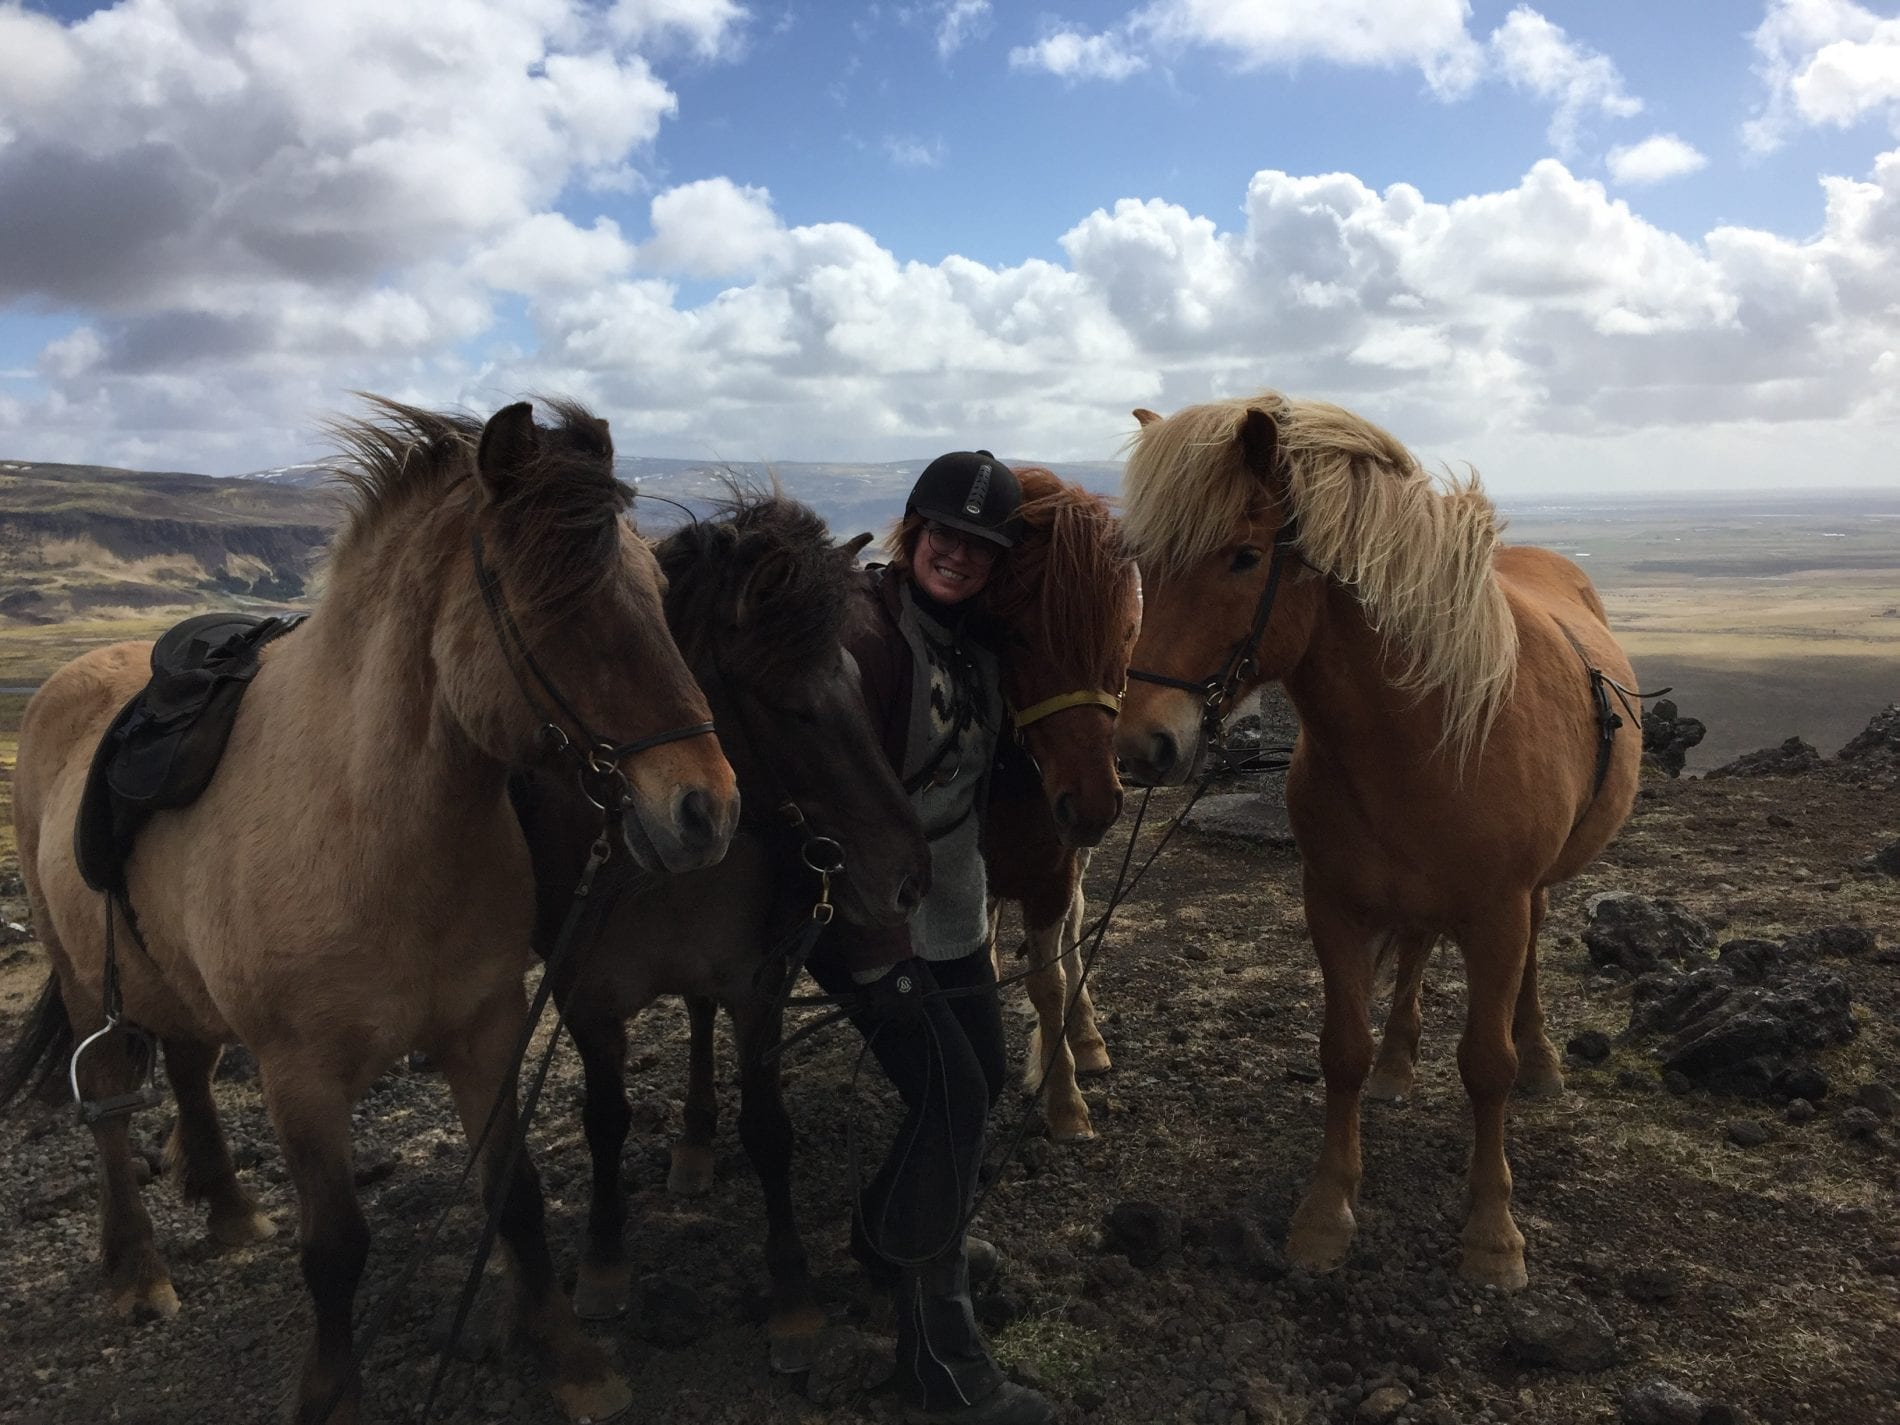 A woman and four horses on a riding break